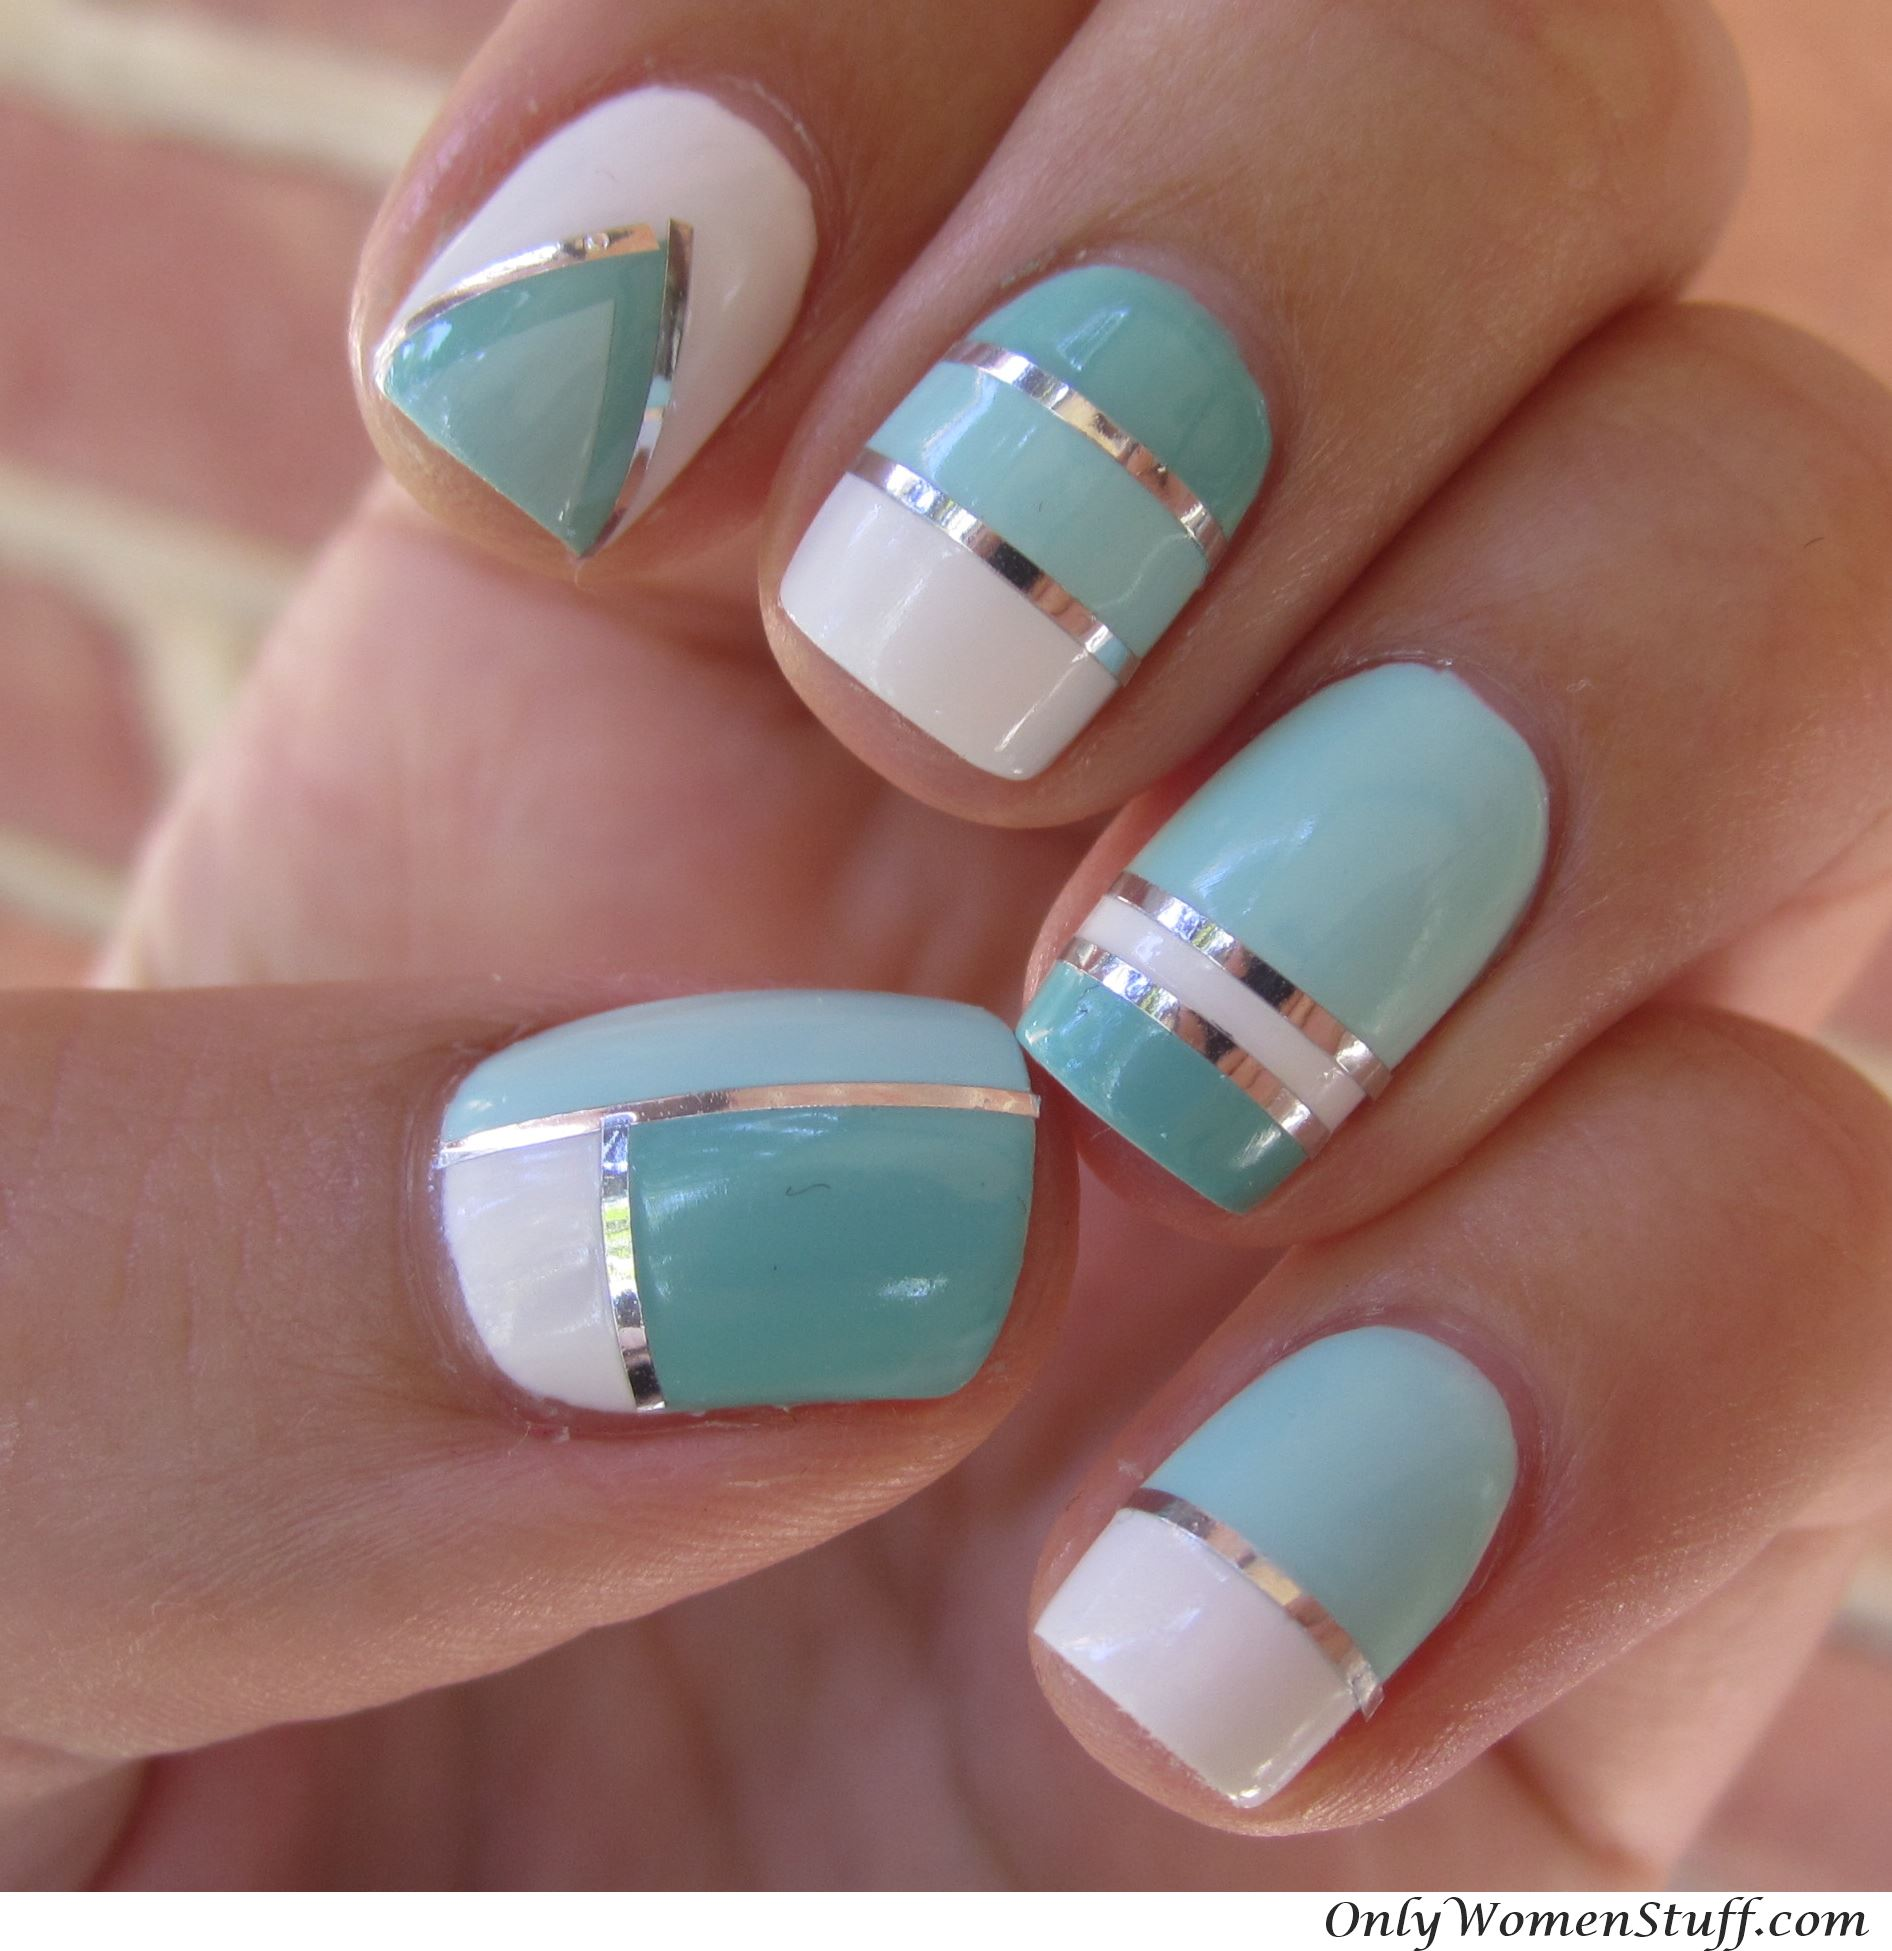 Nail art simple designs for short nails best nails 2018 31 cute nail art designs for short nails prinsesfo Images